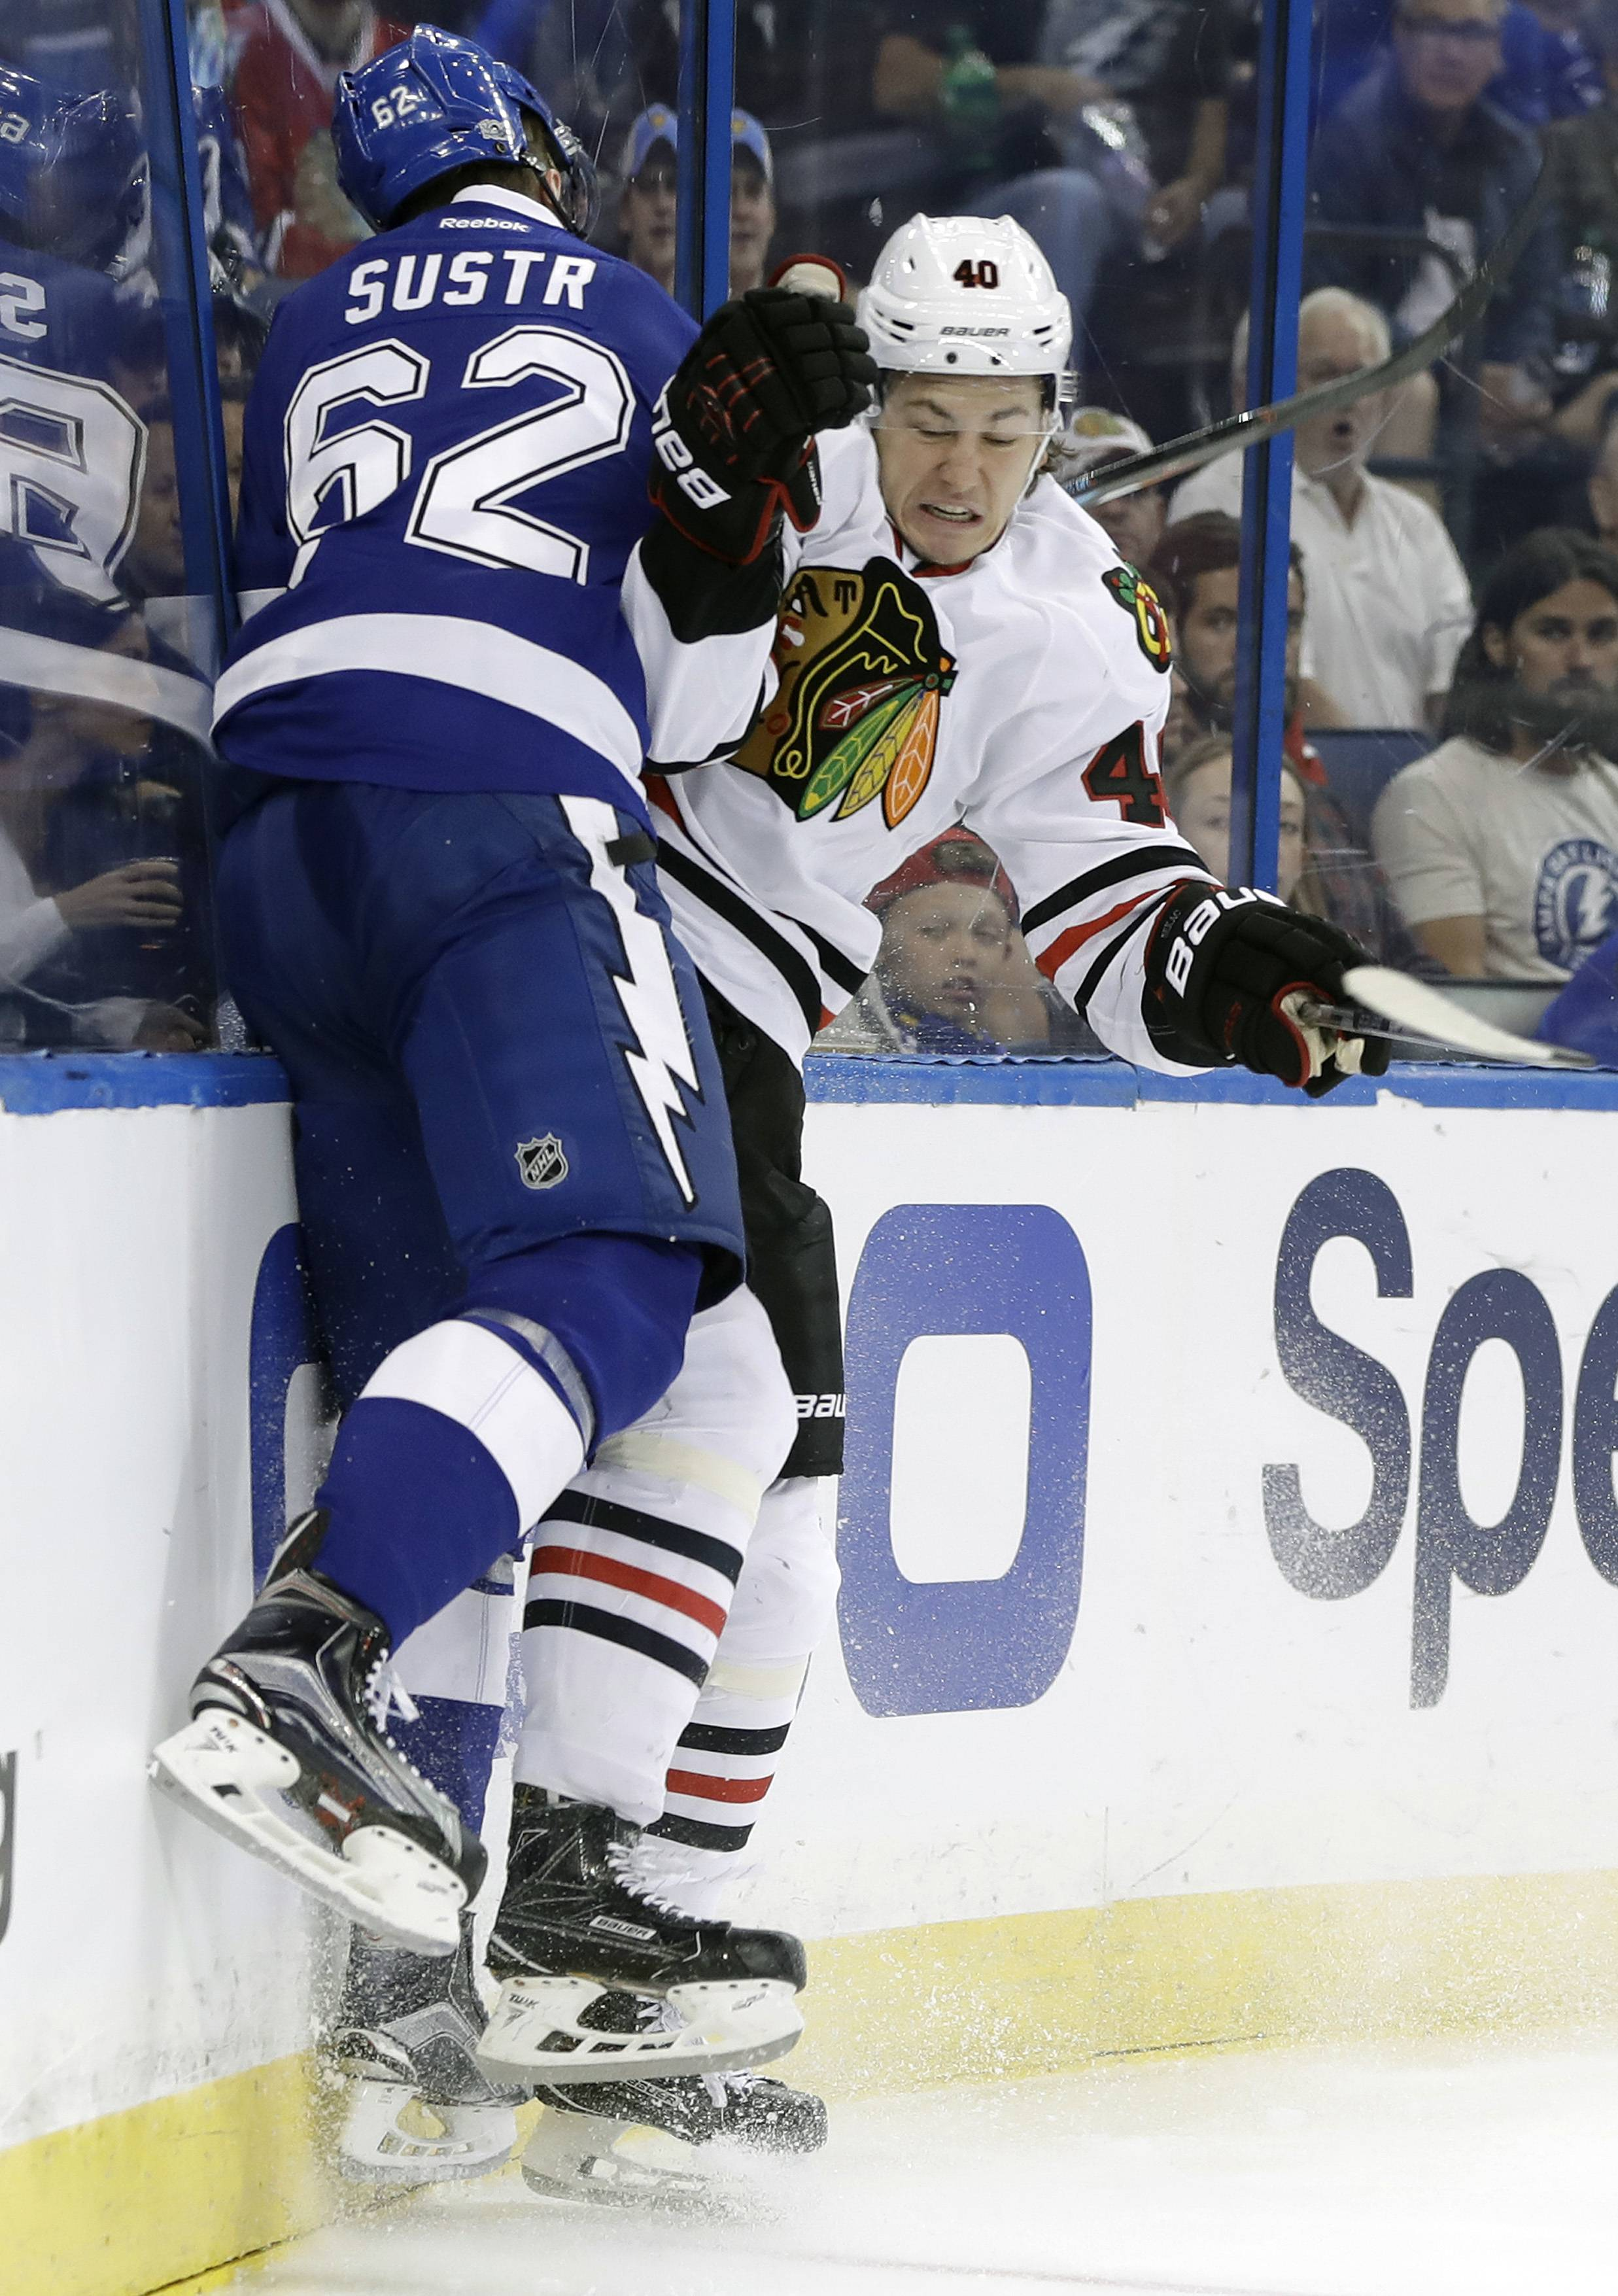 Chicago Blackhawks center John Hayden (40) slams Tampa Bay Lightning defenseman Andrej Sustr (62) into the boards during the first period of an NHL hockey game, Monday, March 27, 2017, in Tampa, Fla. (AP Photo/Chris O'Meara)